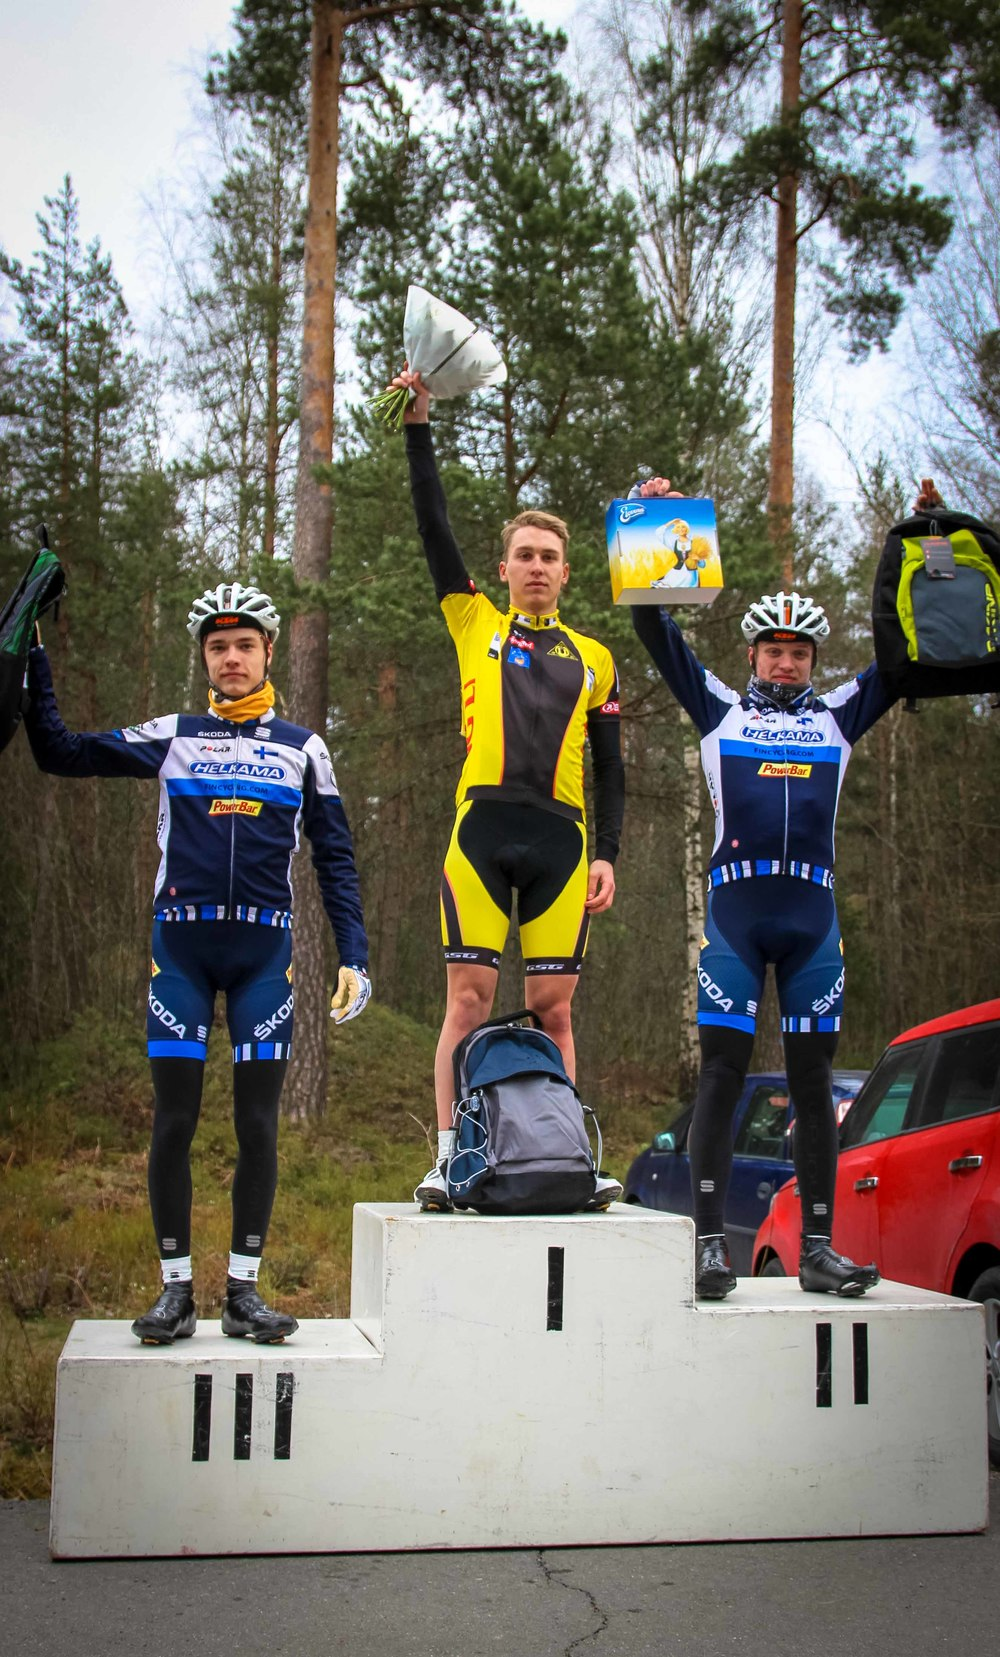 M-18 class podium Joel Bergman (3rd), Erik Relanto (1st) and Simo Terävä (2nd)